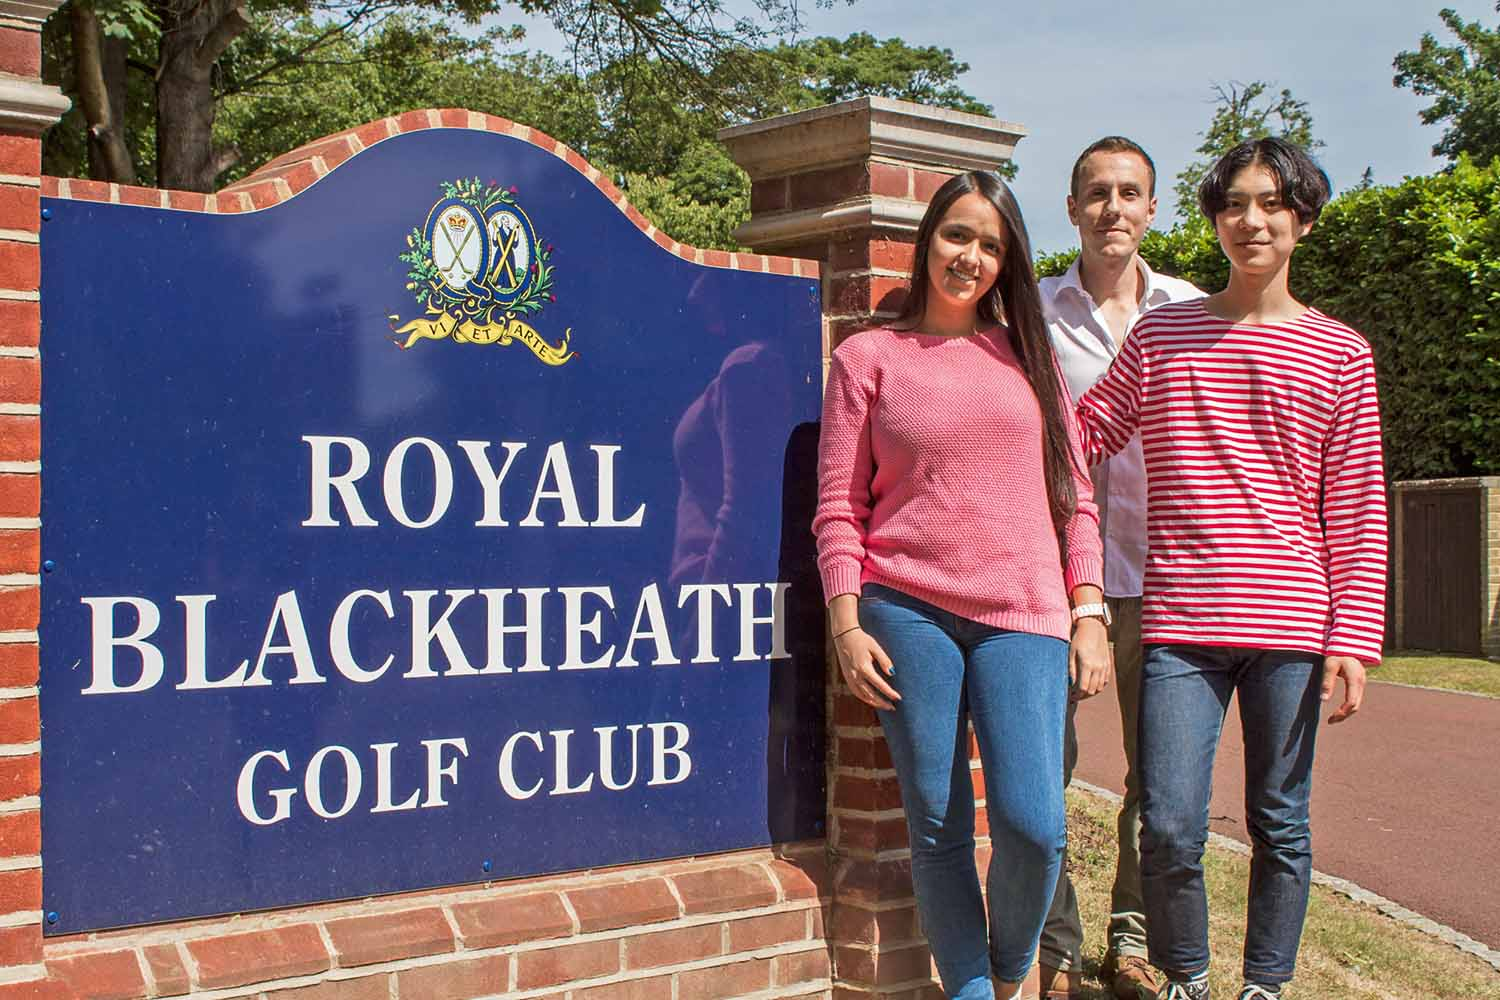 London Eltham_Location_Royal Blackheath Golf Club_Students_01